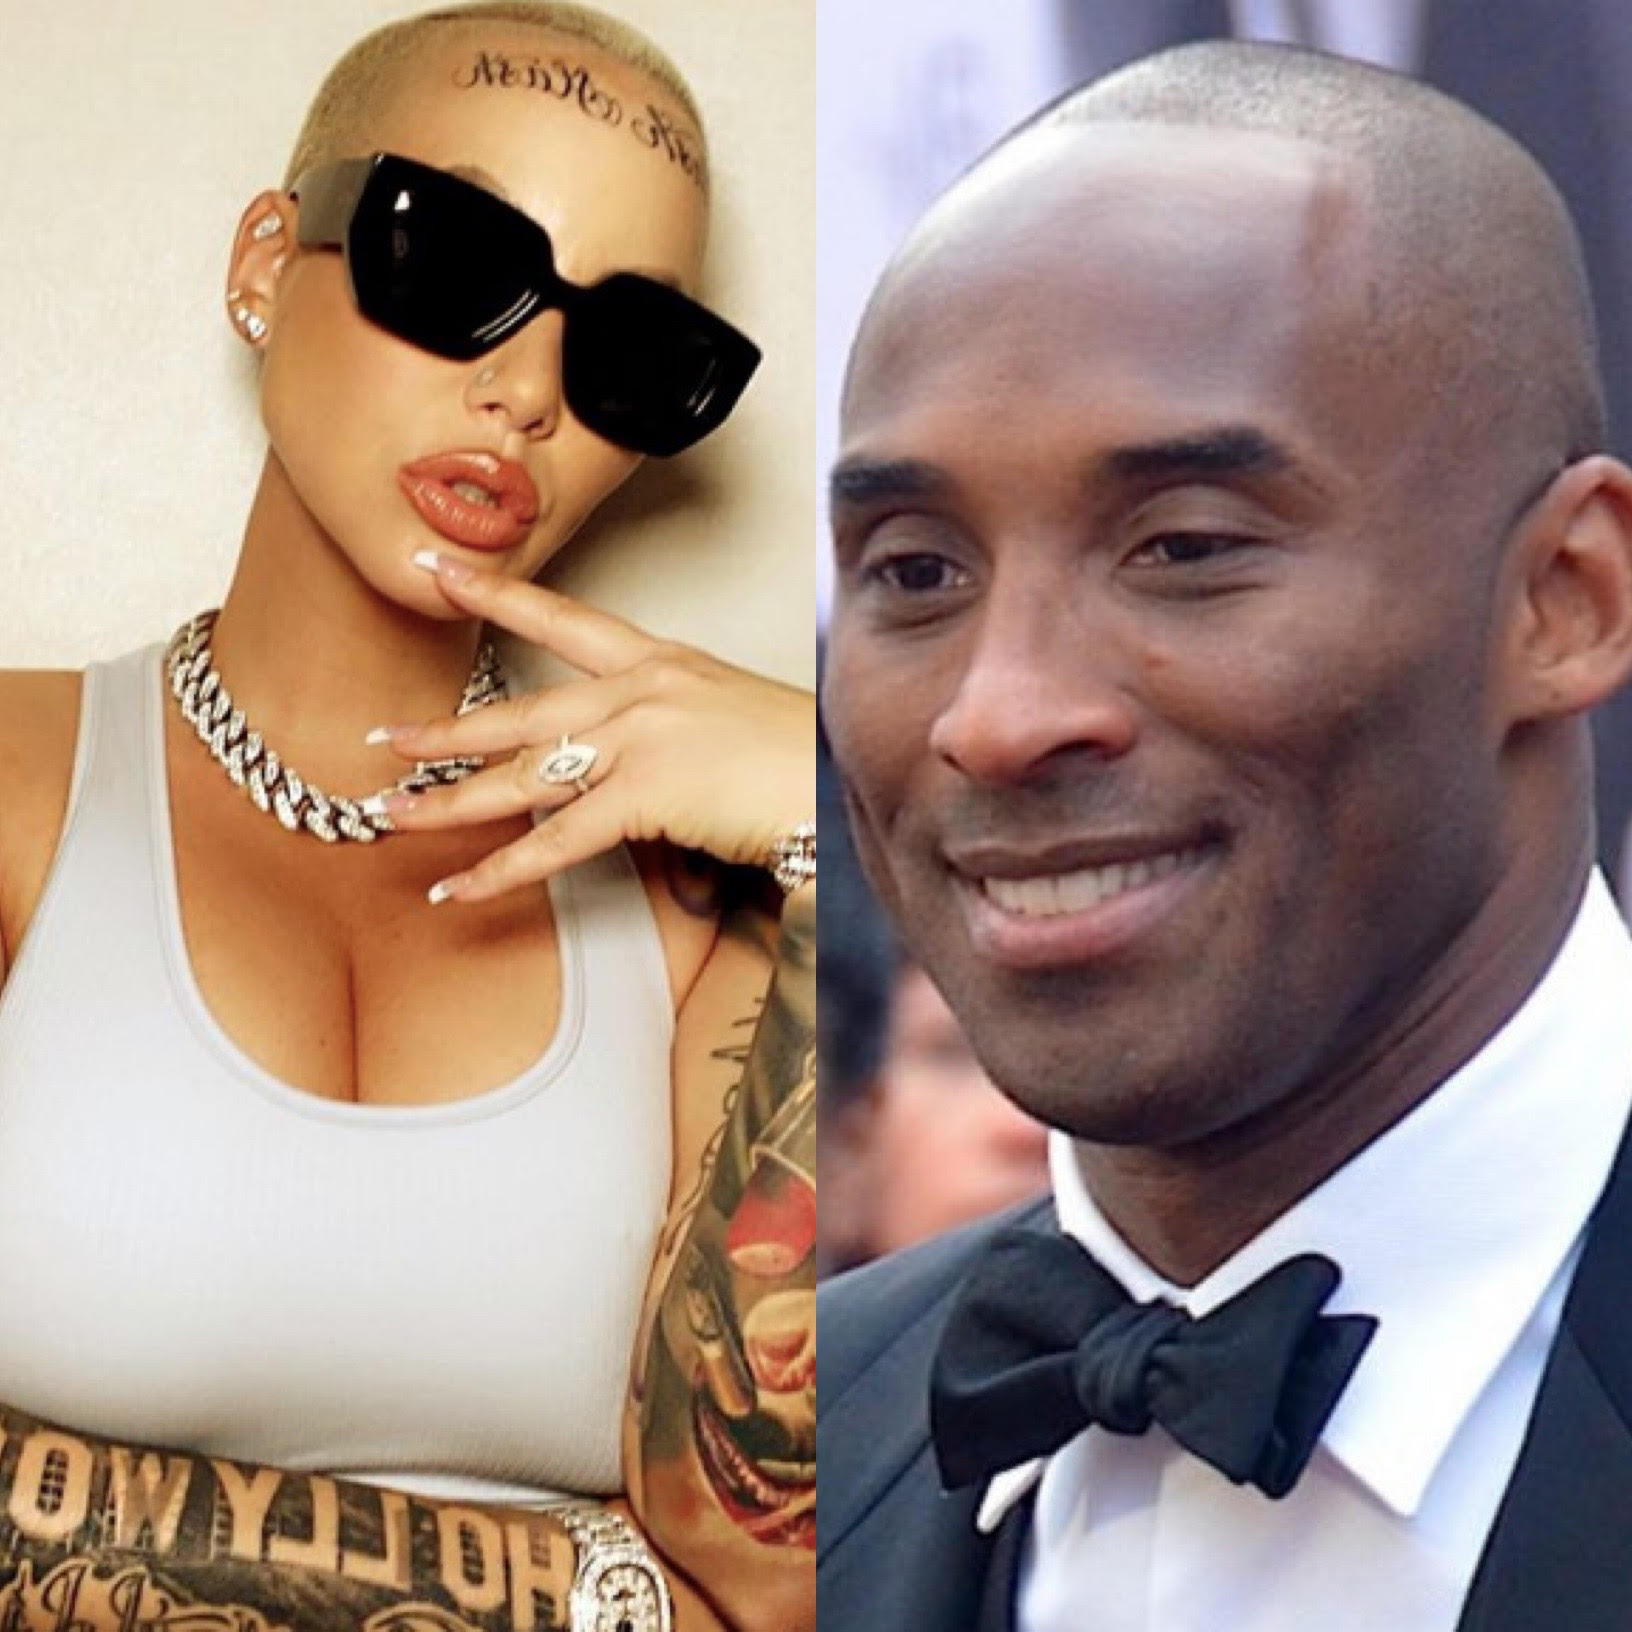 Amber Rose's boyfriend Alexander Edwards gets face tattoo to match hers